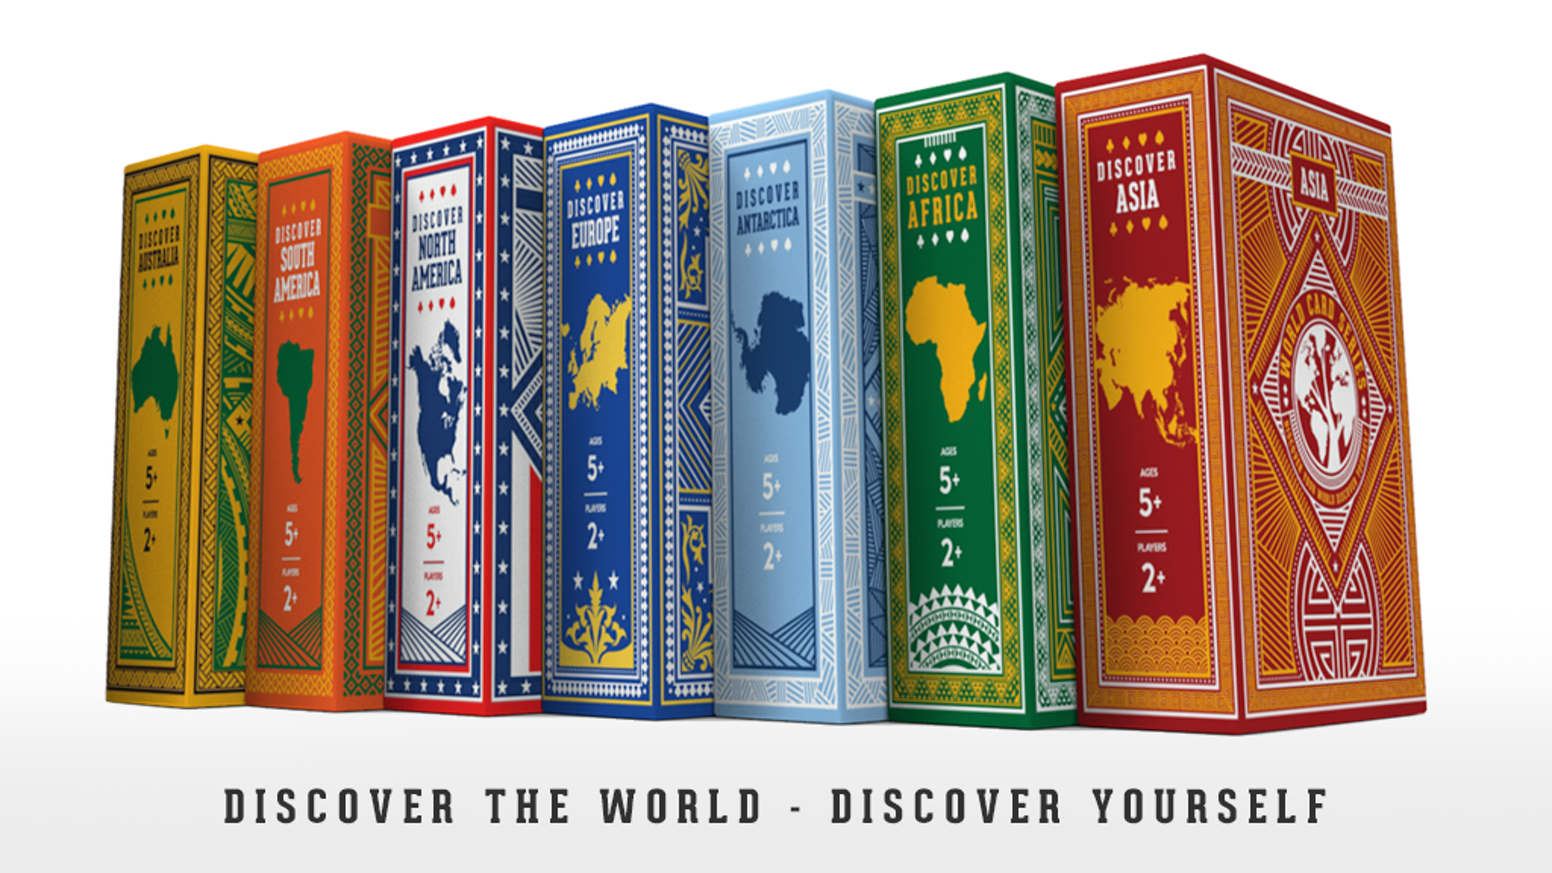 Designed for geography enthusiasts, world travelers, classroom students, curious wanderers, card collectors, and adventure seekers.